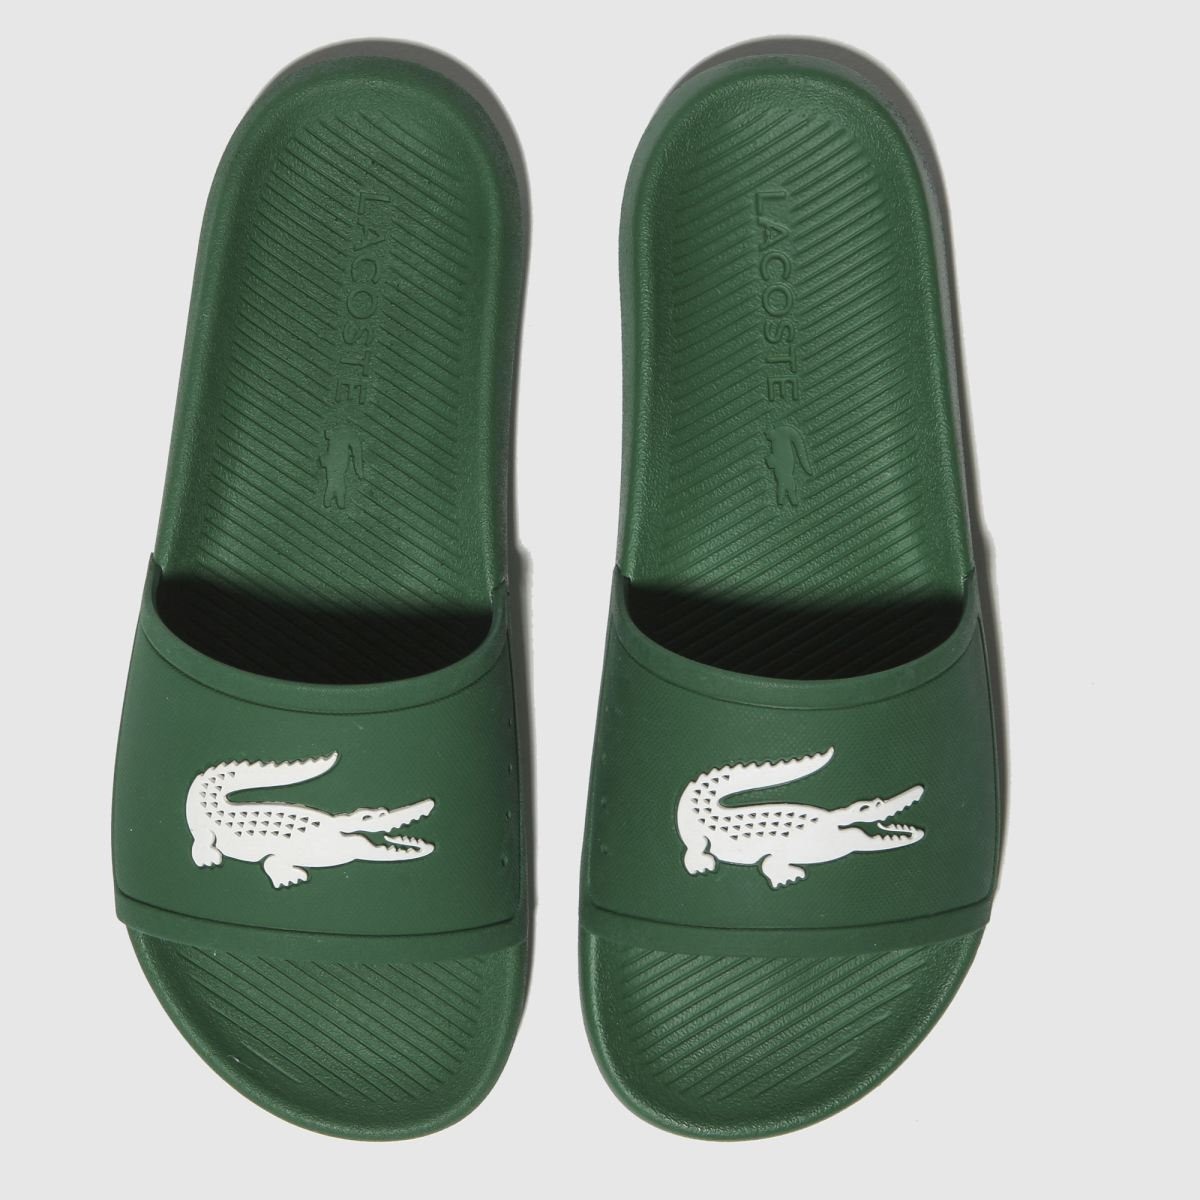 Lacoste Green Croco Slide Sandals